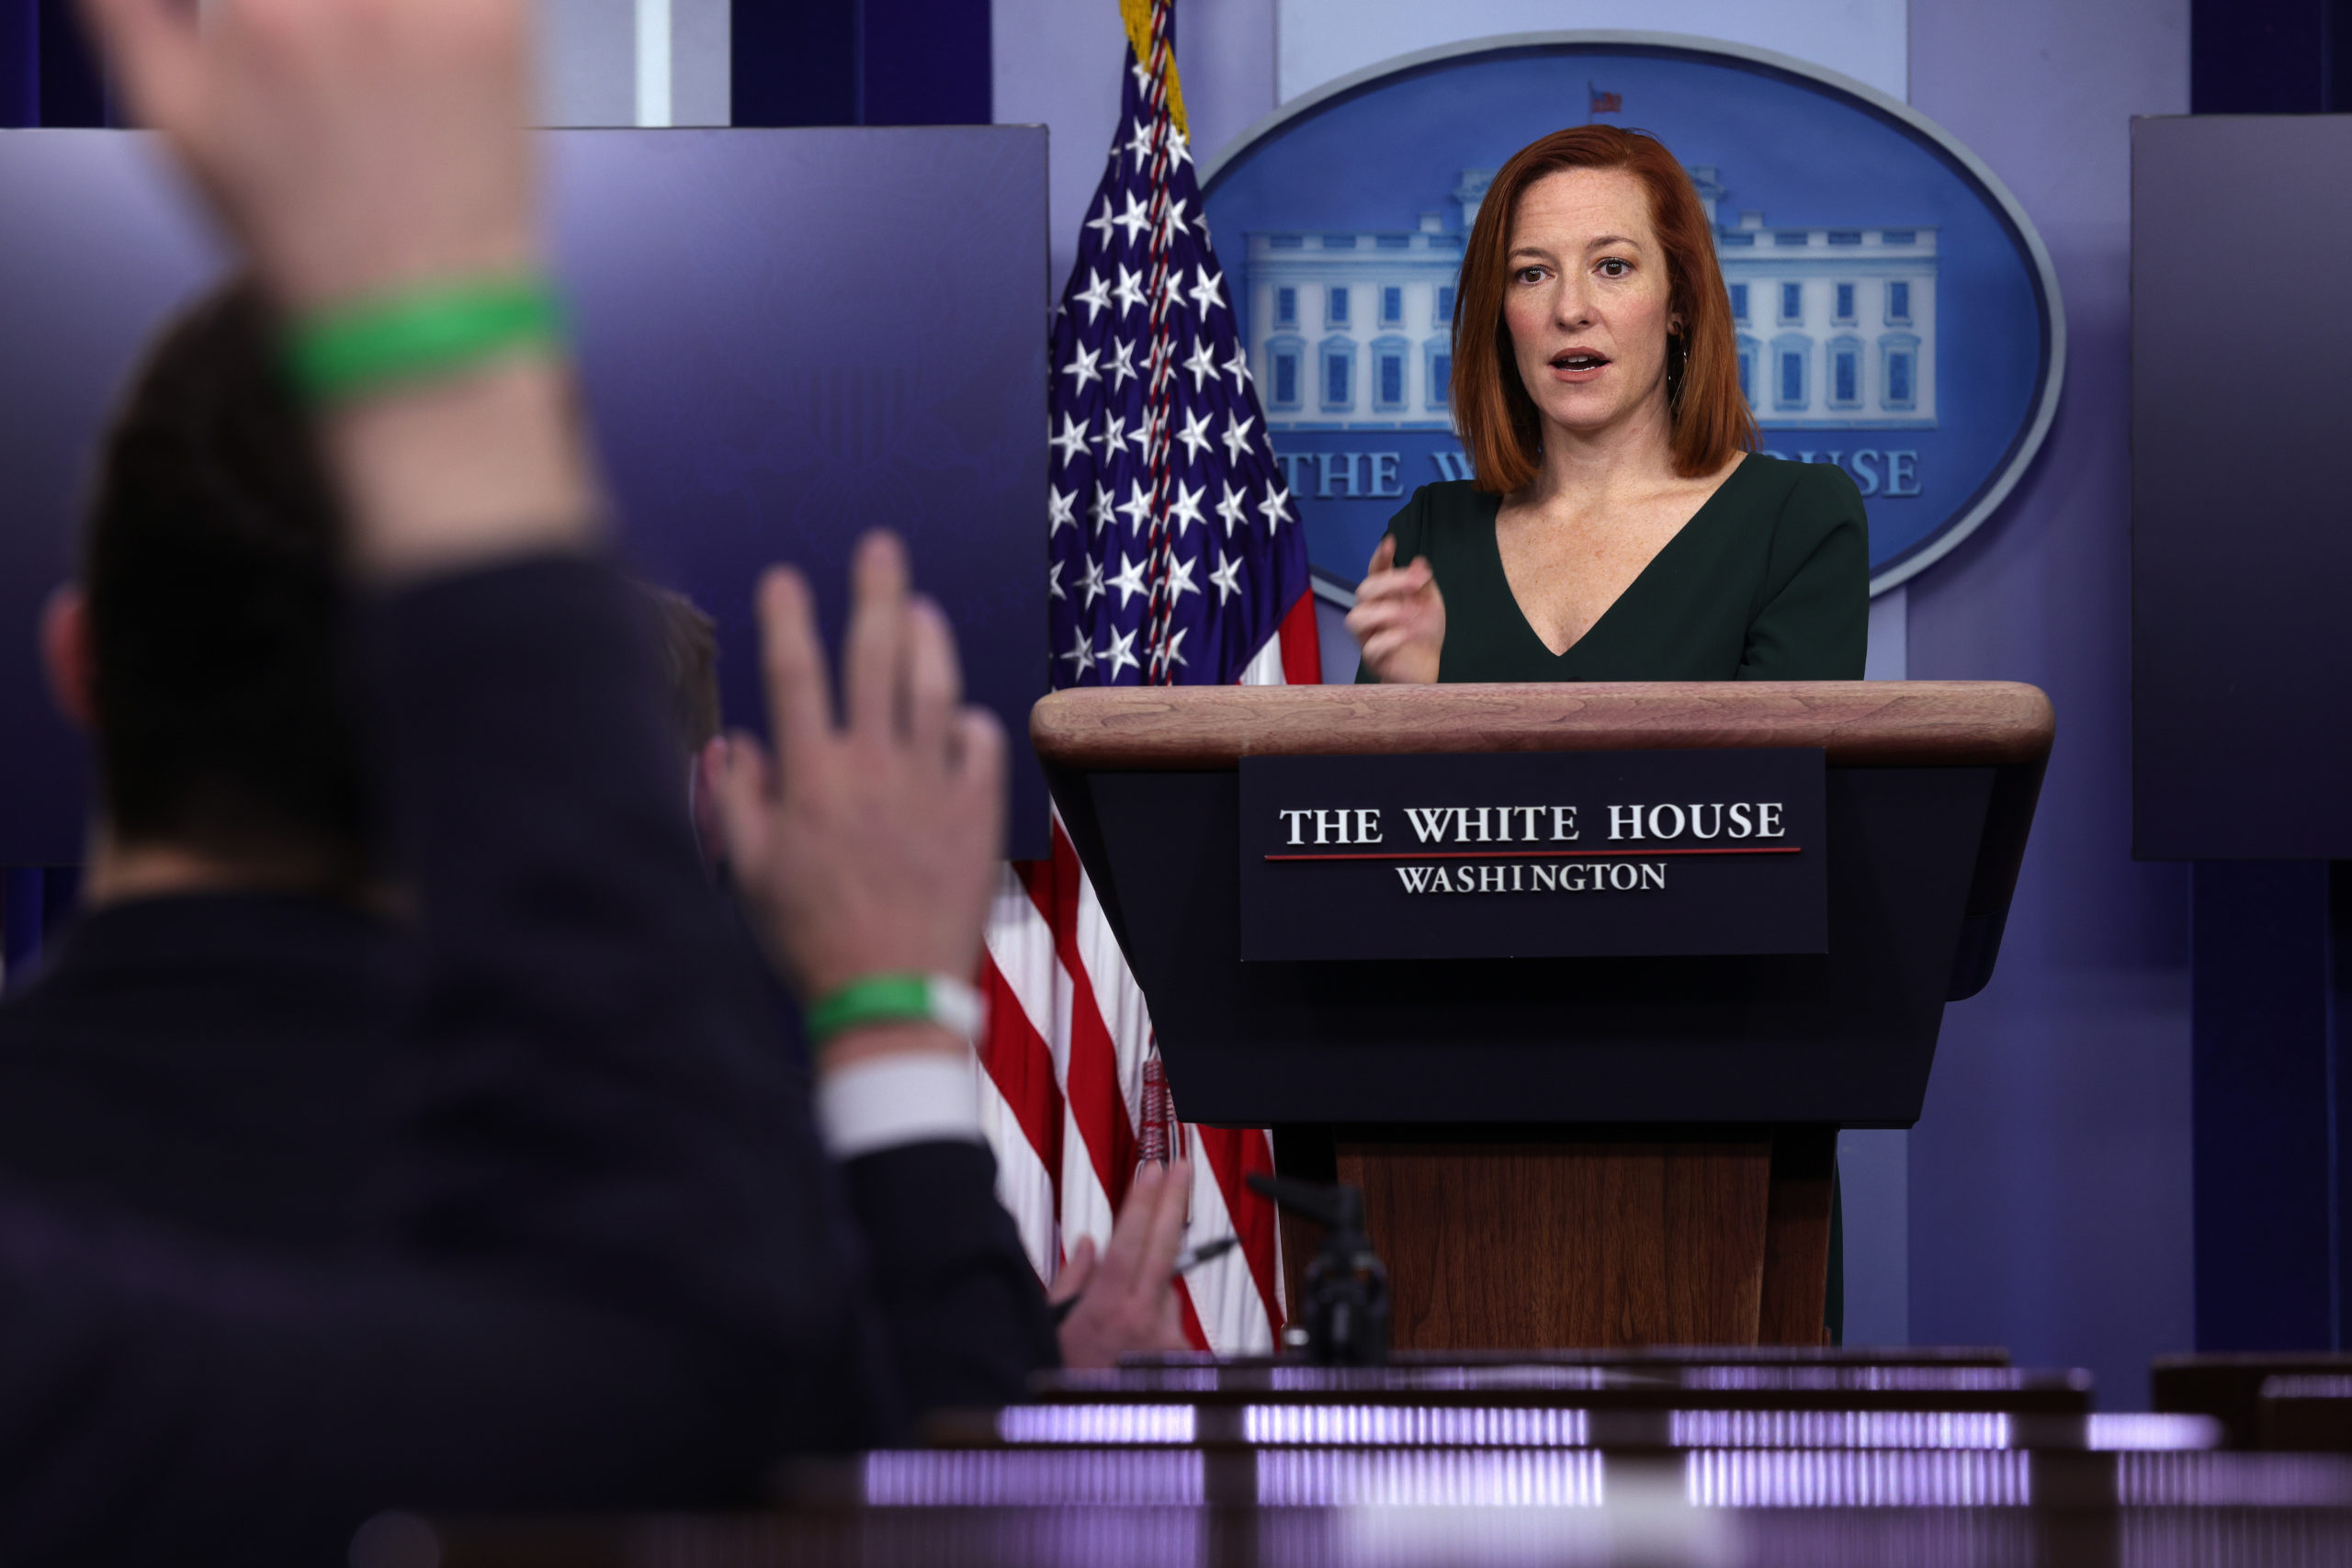 WASHINGTON, DC - FEBRUARY 25: White House Press Secretary Jen Psaki speaks during a news briefing at the James Brady Press Briefing Room of the White House February 25, 2021 in Washington, DC. Psaki held a news briefing to answer questions from the members of the press. (Photo by Alex Wong/Getty Images)